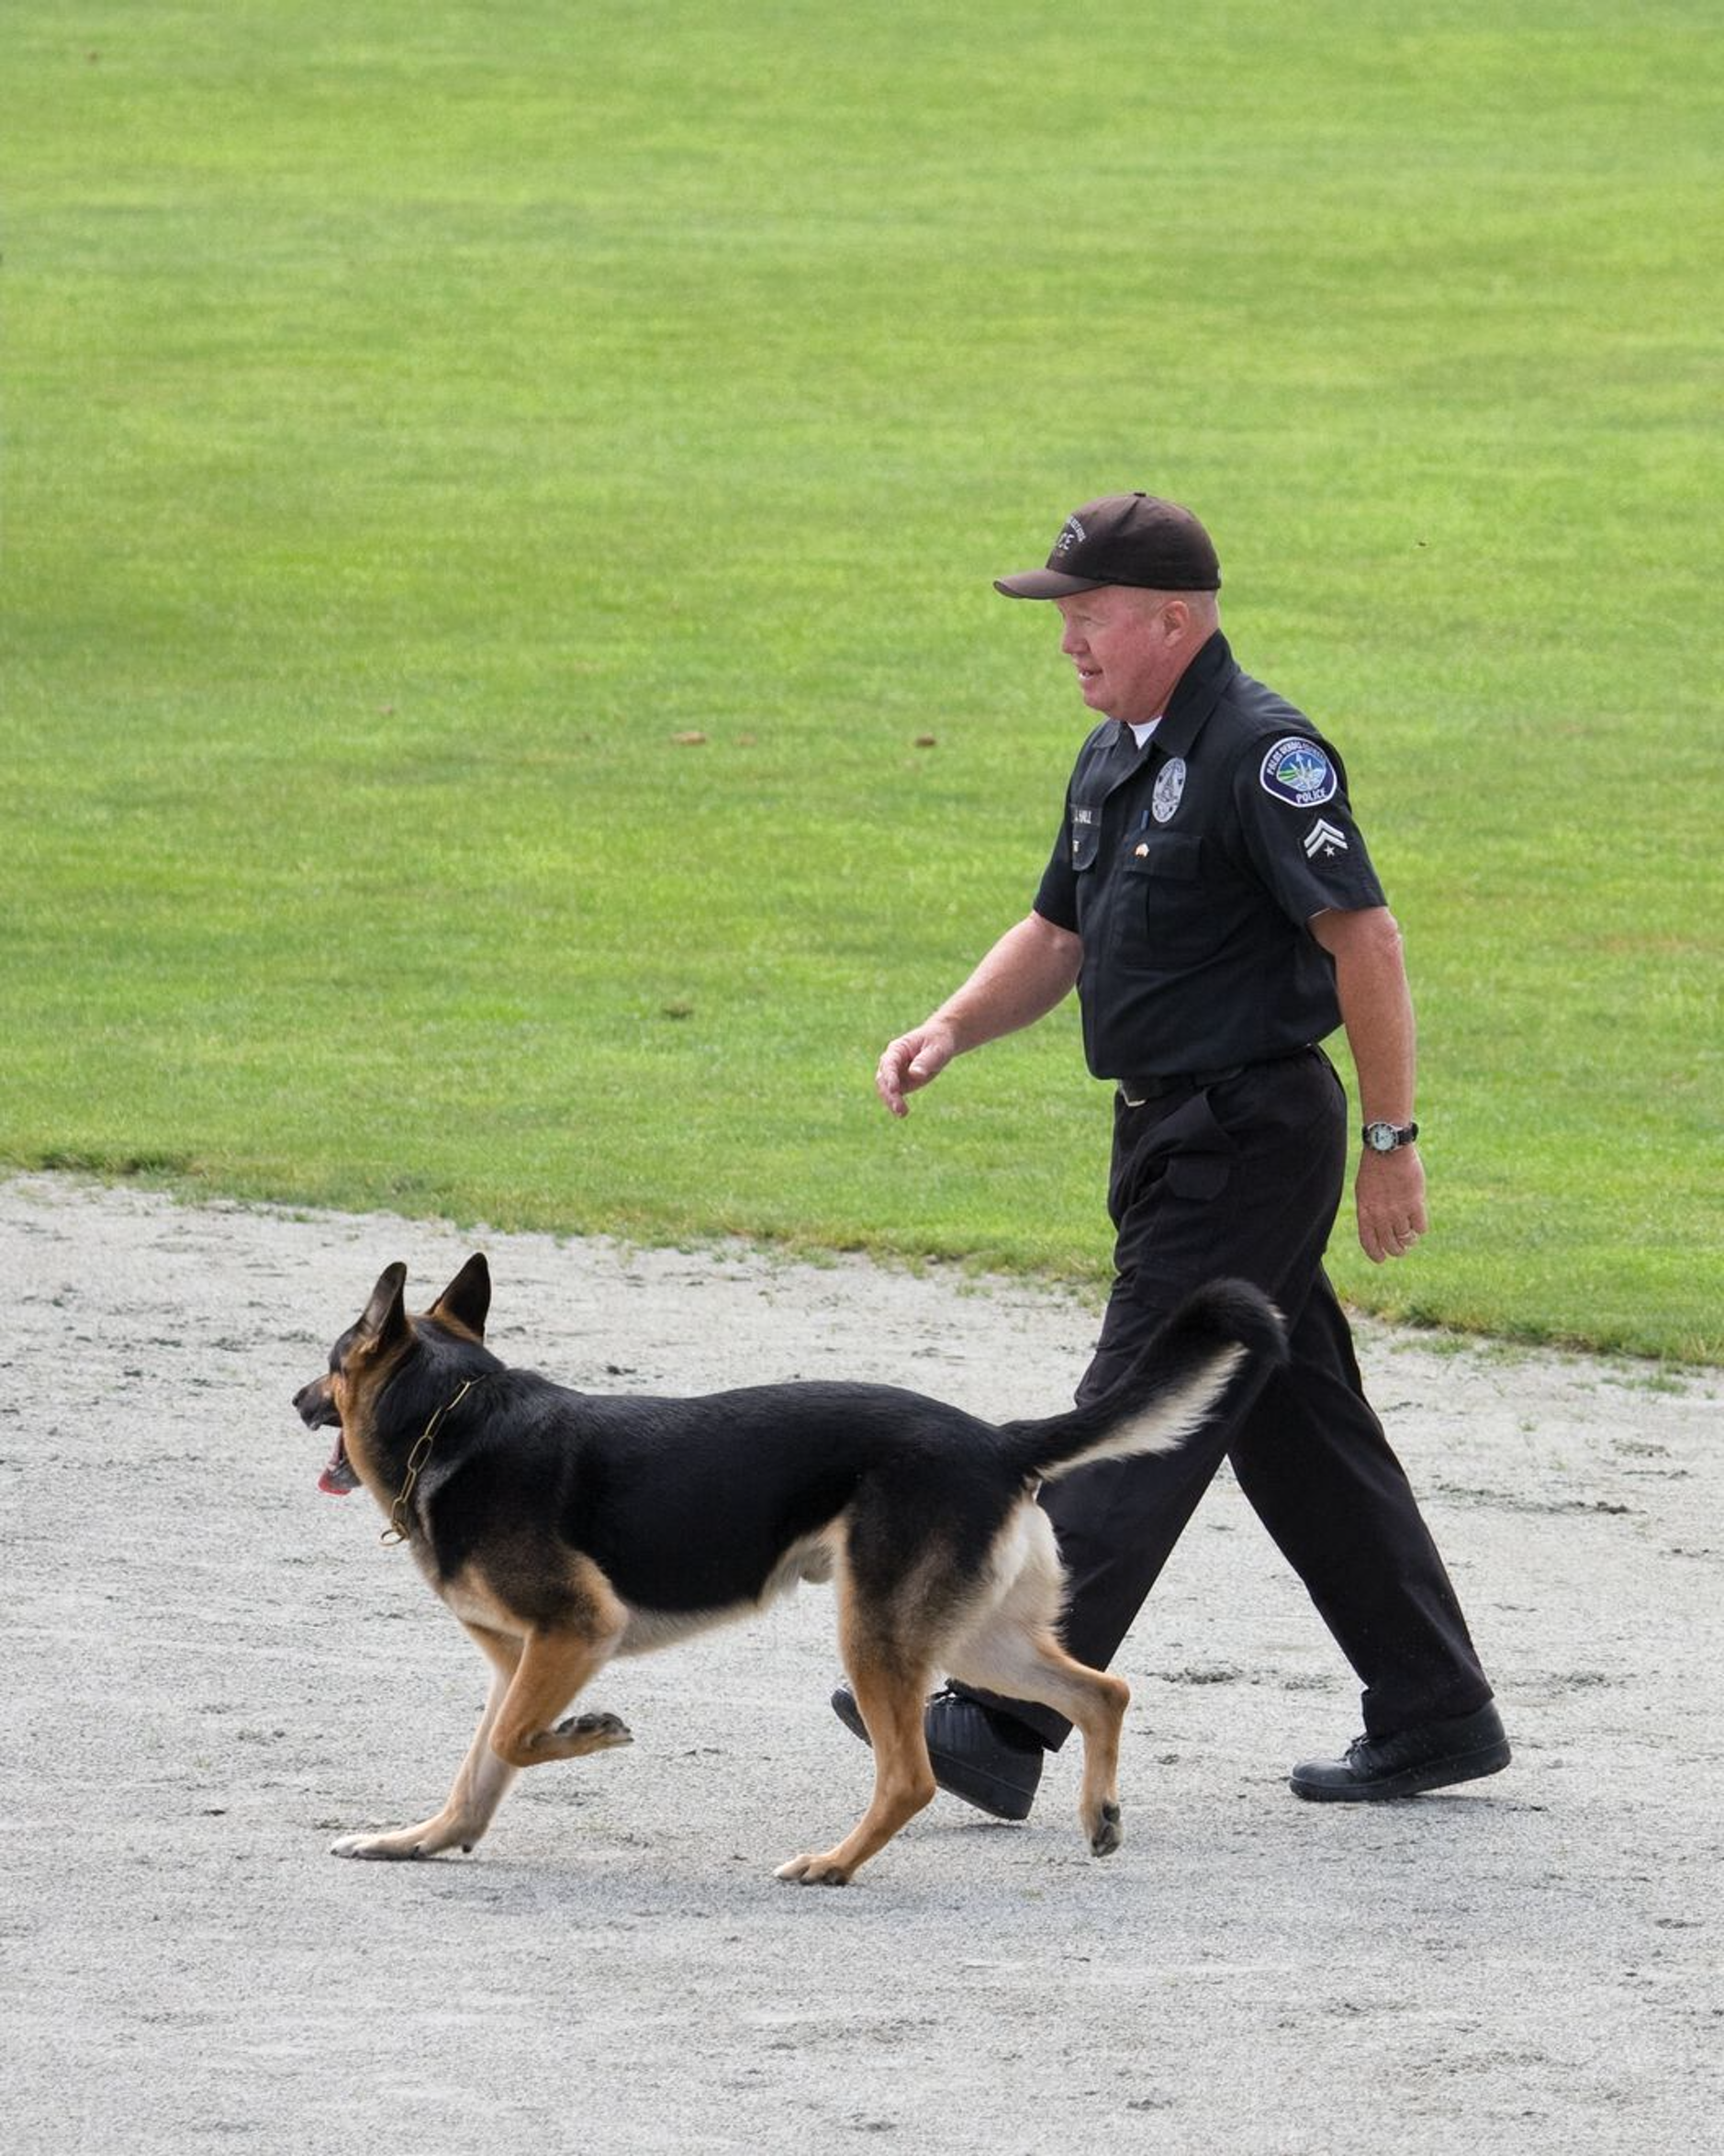 Police dogs are subject to low or moderate levels of exercise for a prolonged period of time, and should be fed a diet with both digestible carbohydrates and fat as the energy source.